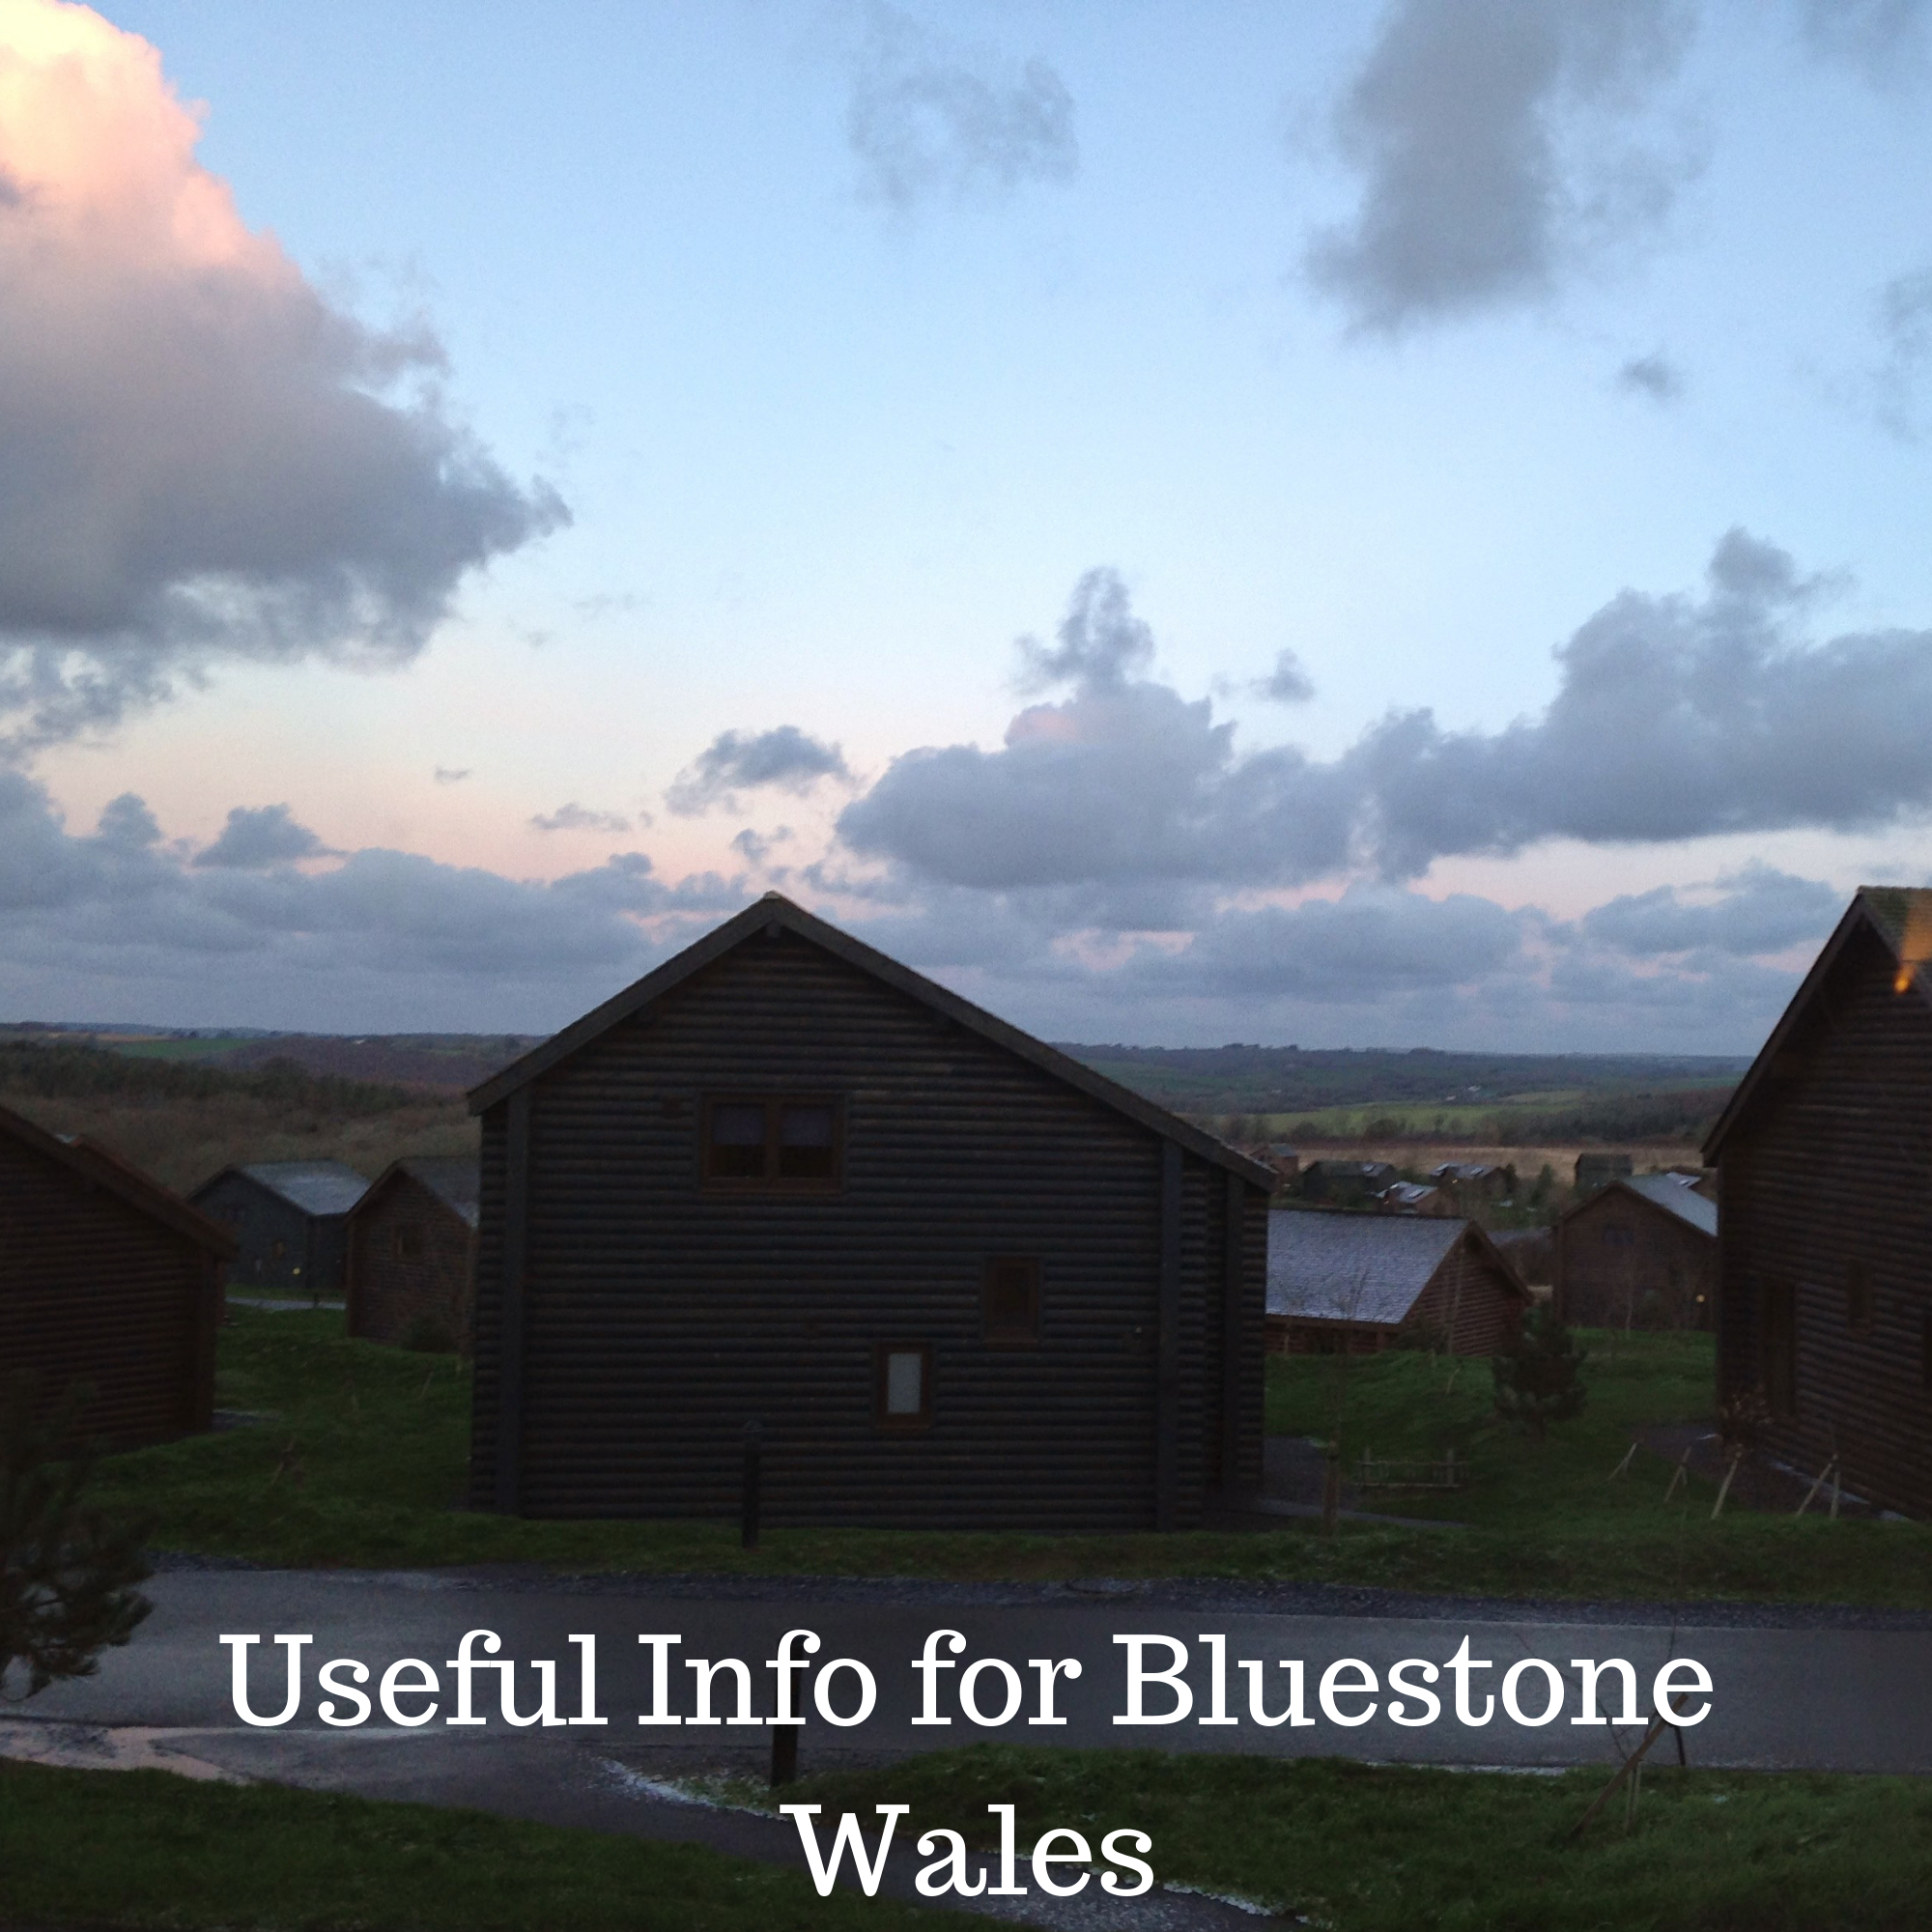 Useful Info for Bluestone Wales